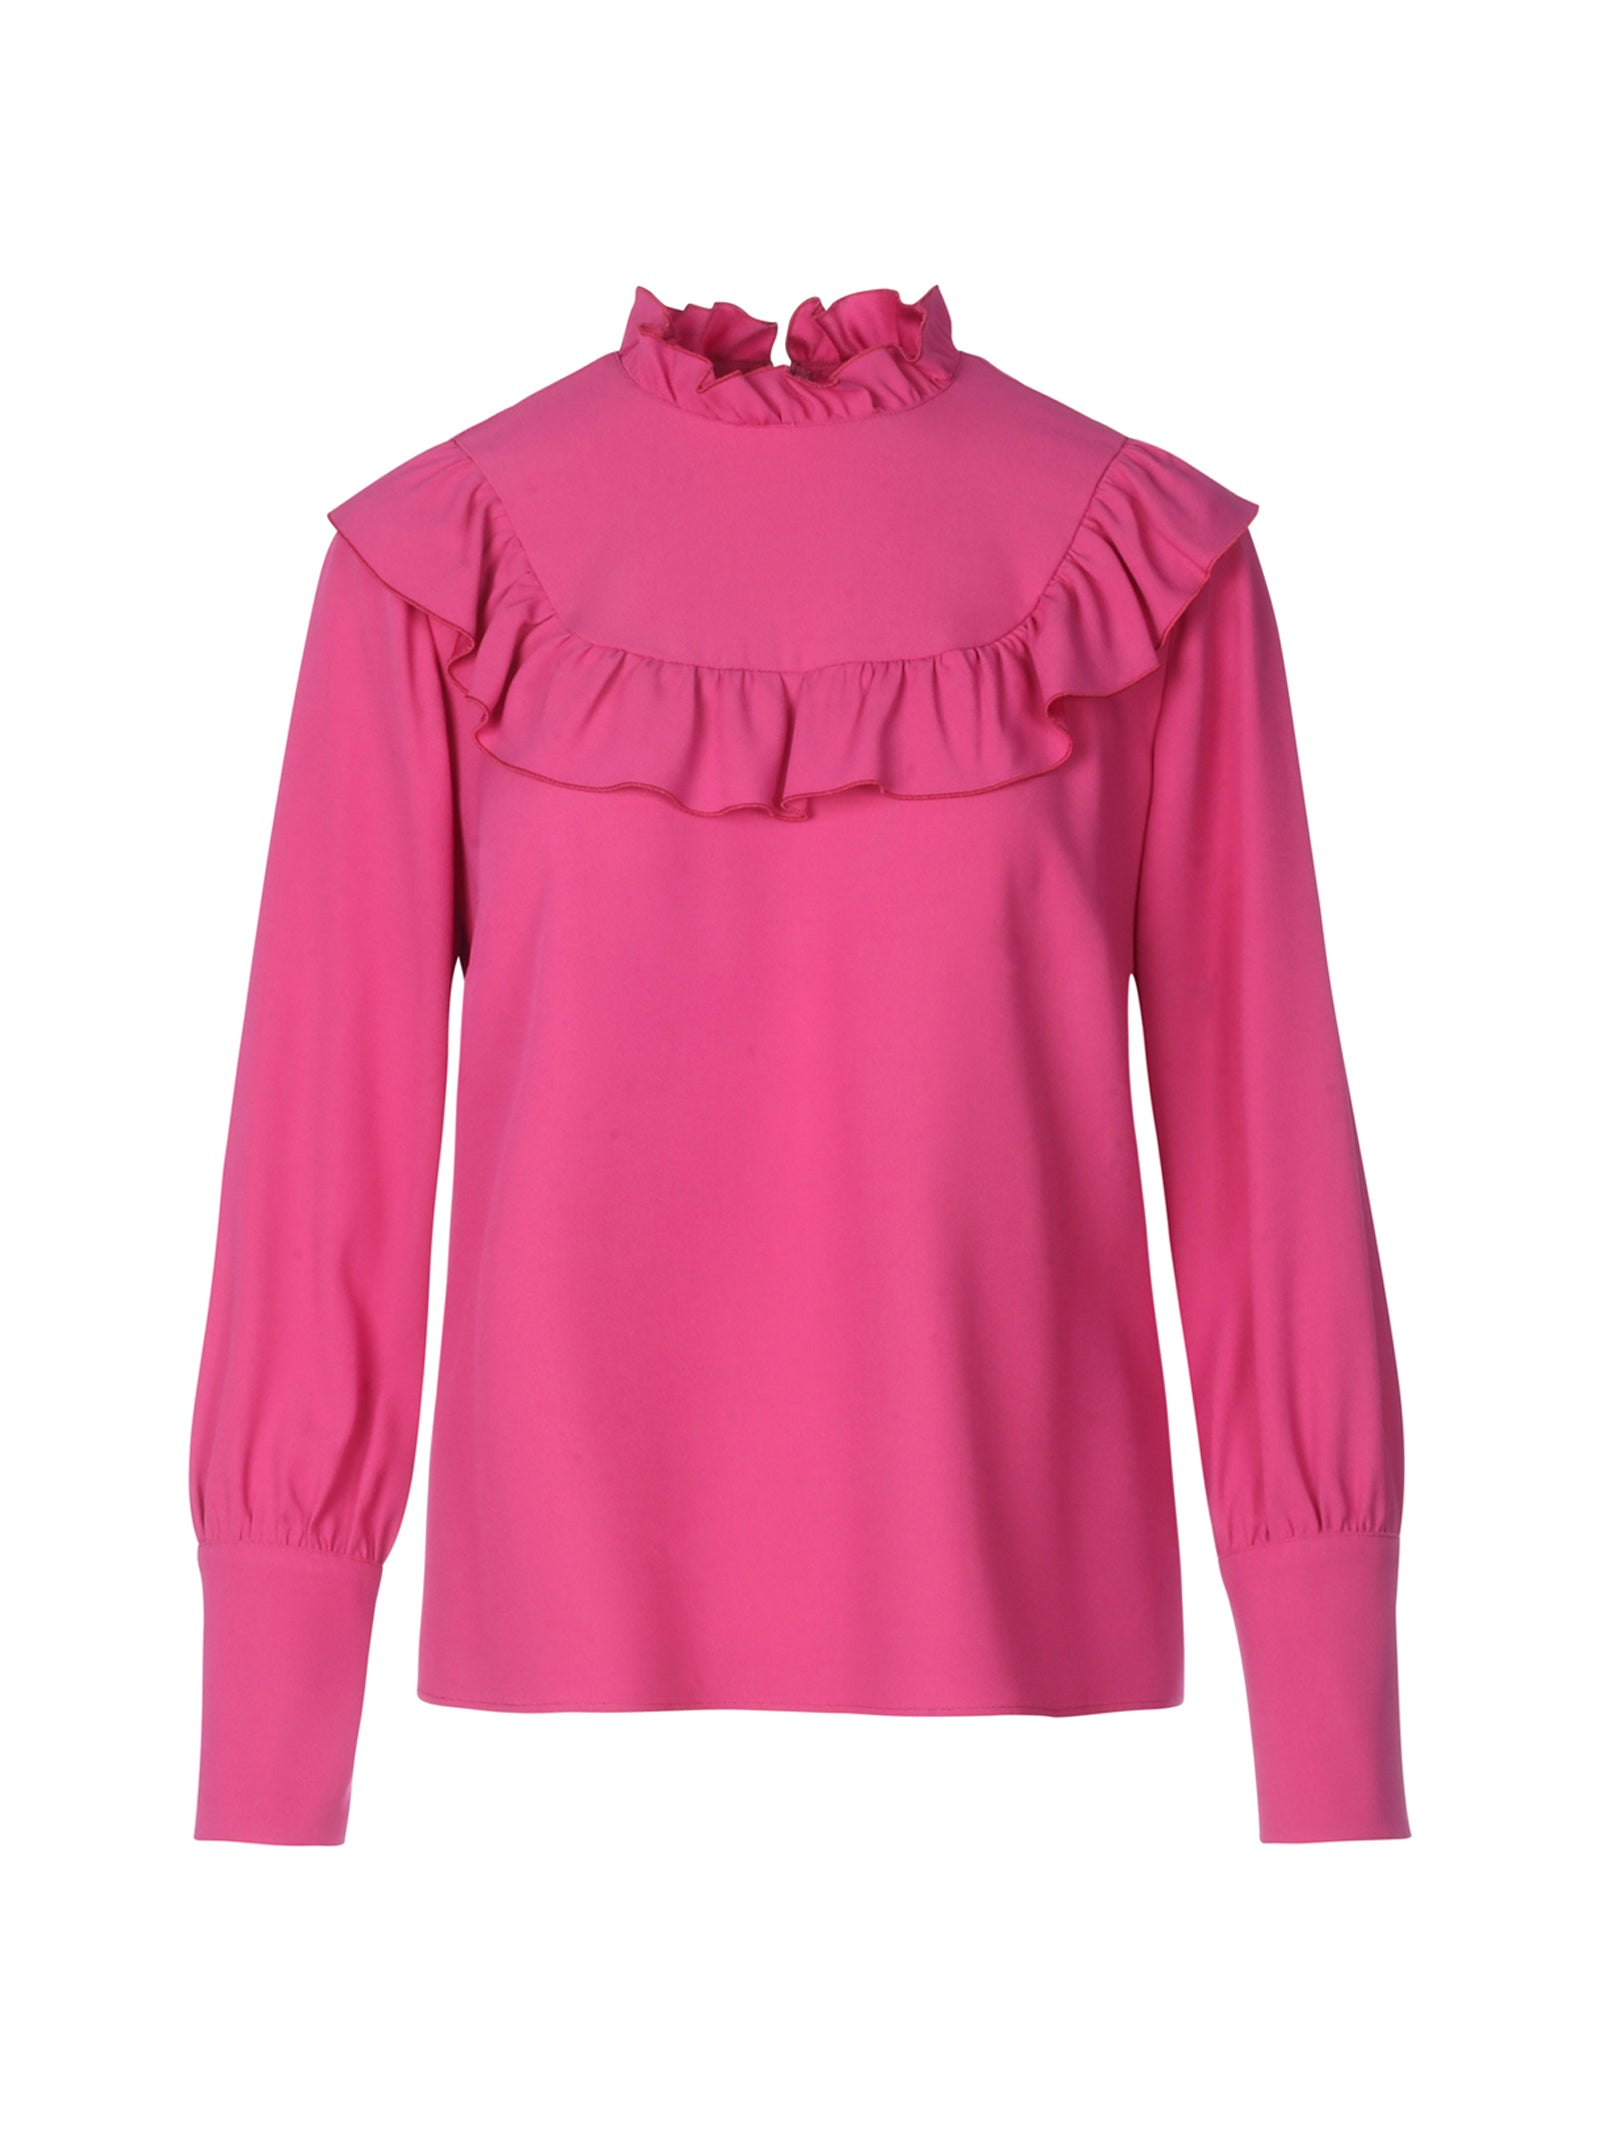 ruffled long-sleeved top